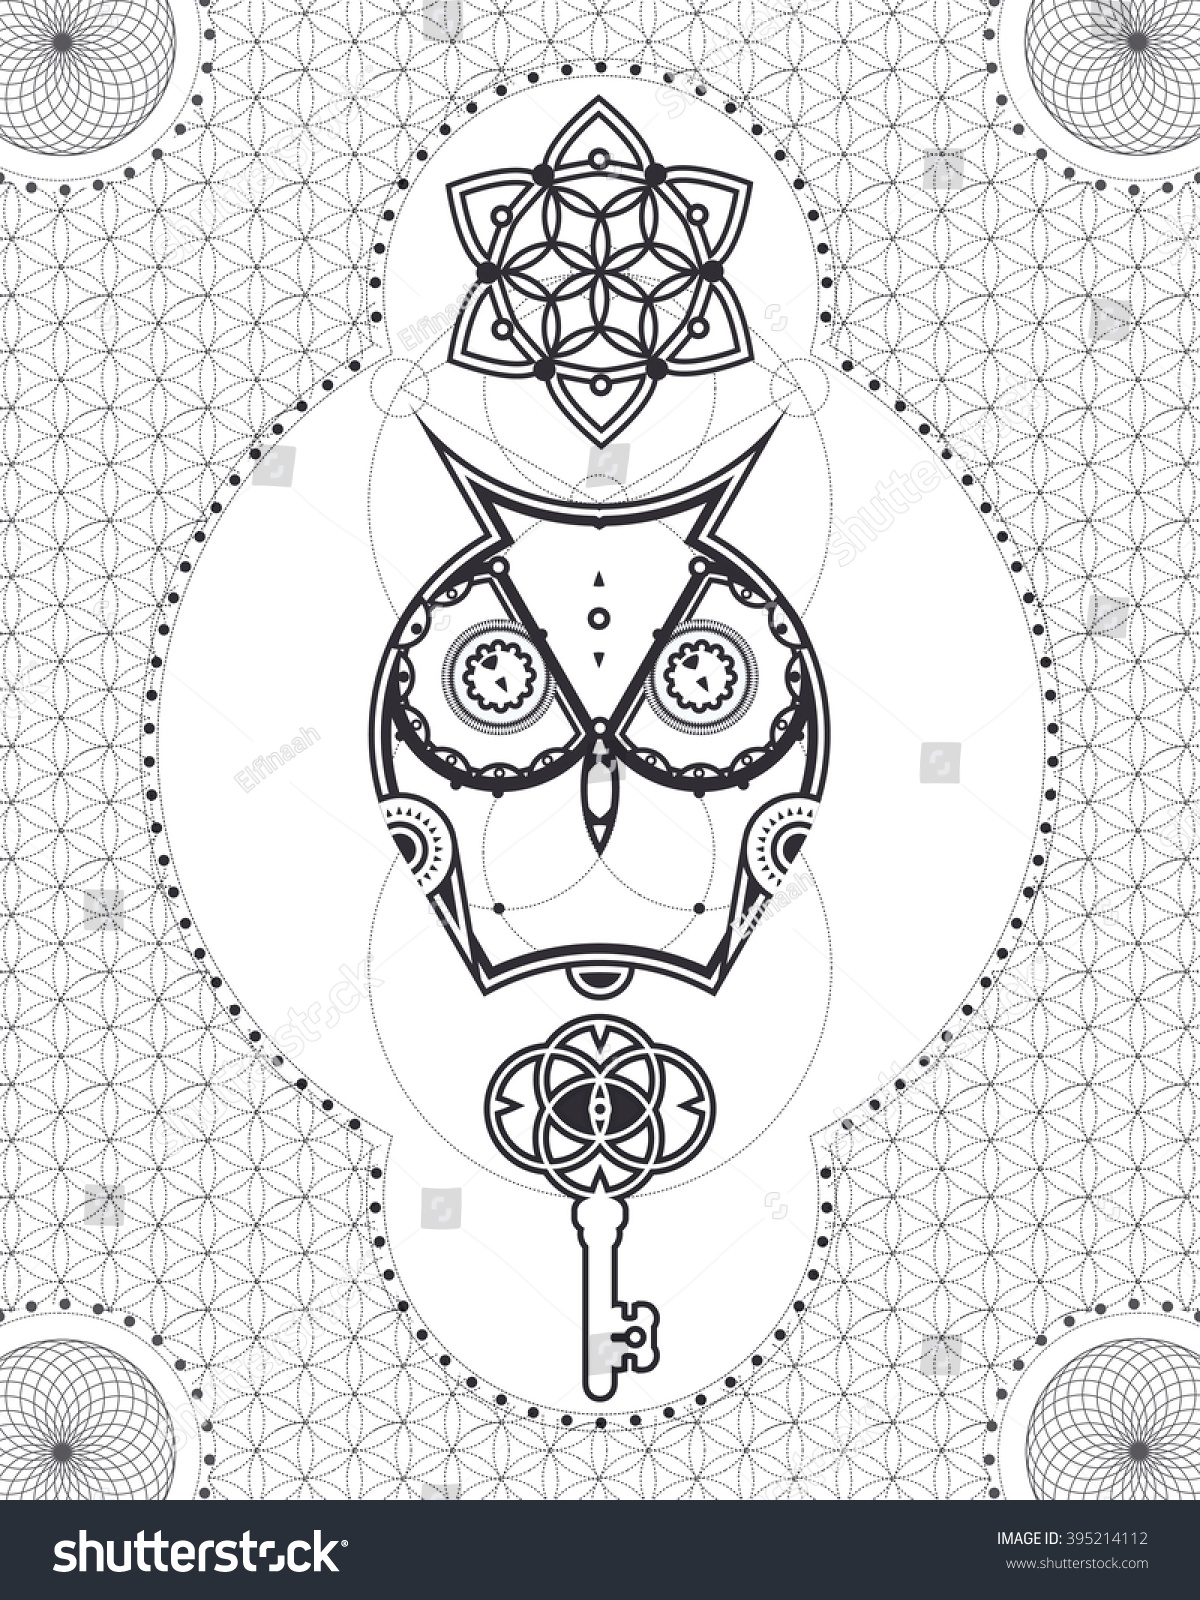 Geometric And Abstract Coloring Page For Adults Owl With Sacred Geometry Mandala Key